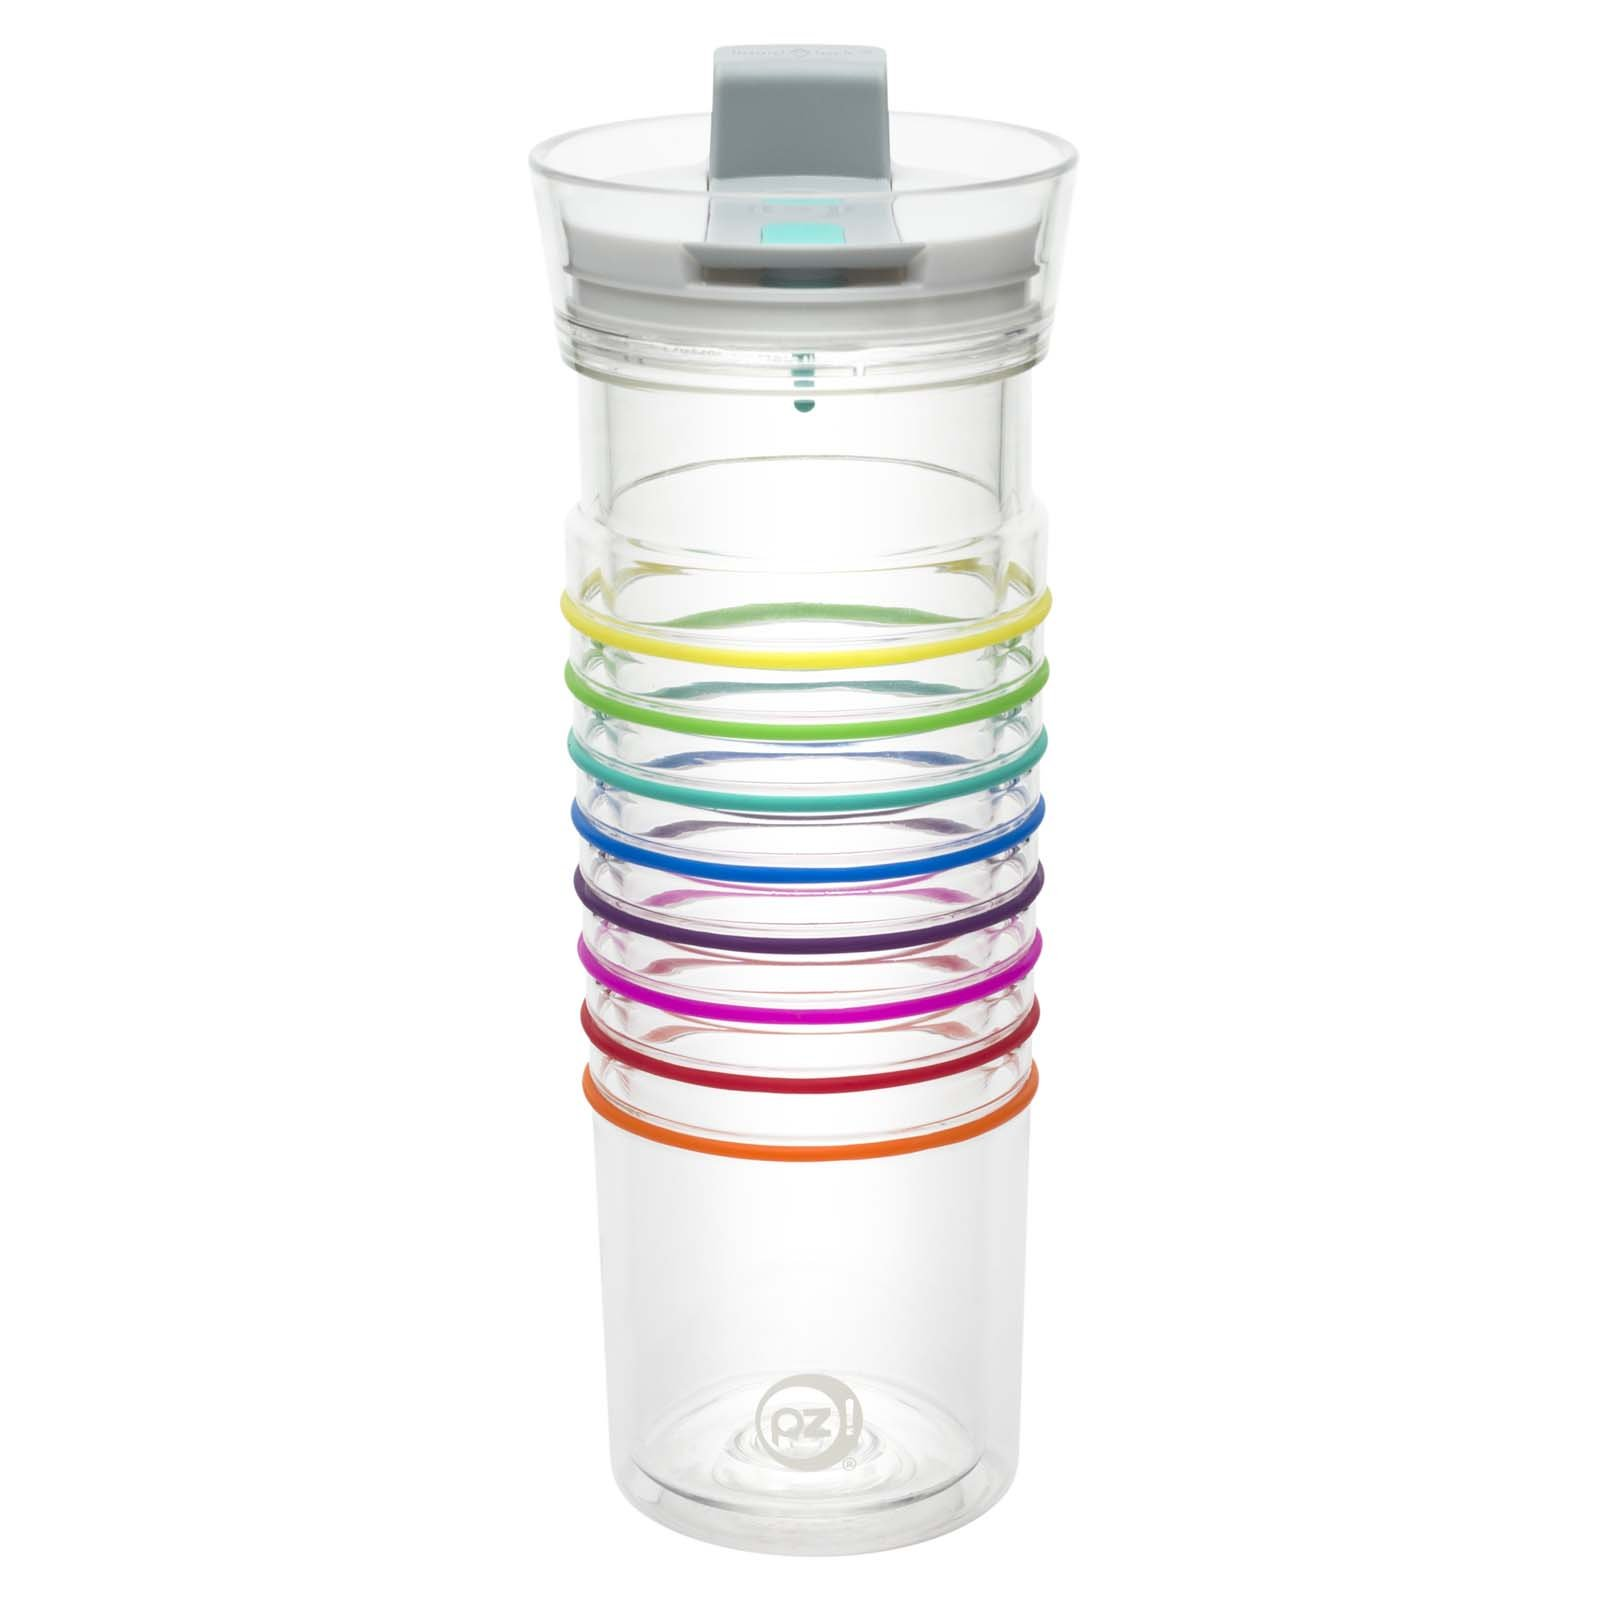 Zak Designs HydraTrak 20 oz. Double Wall Tumbler with Lever Lid, Clear